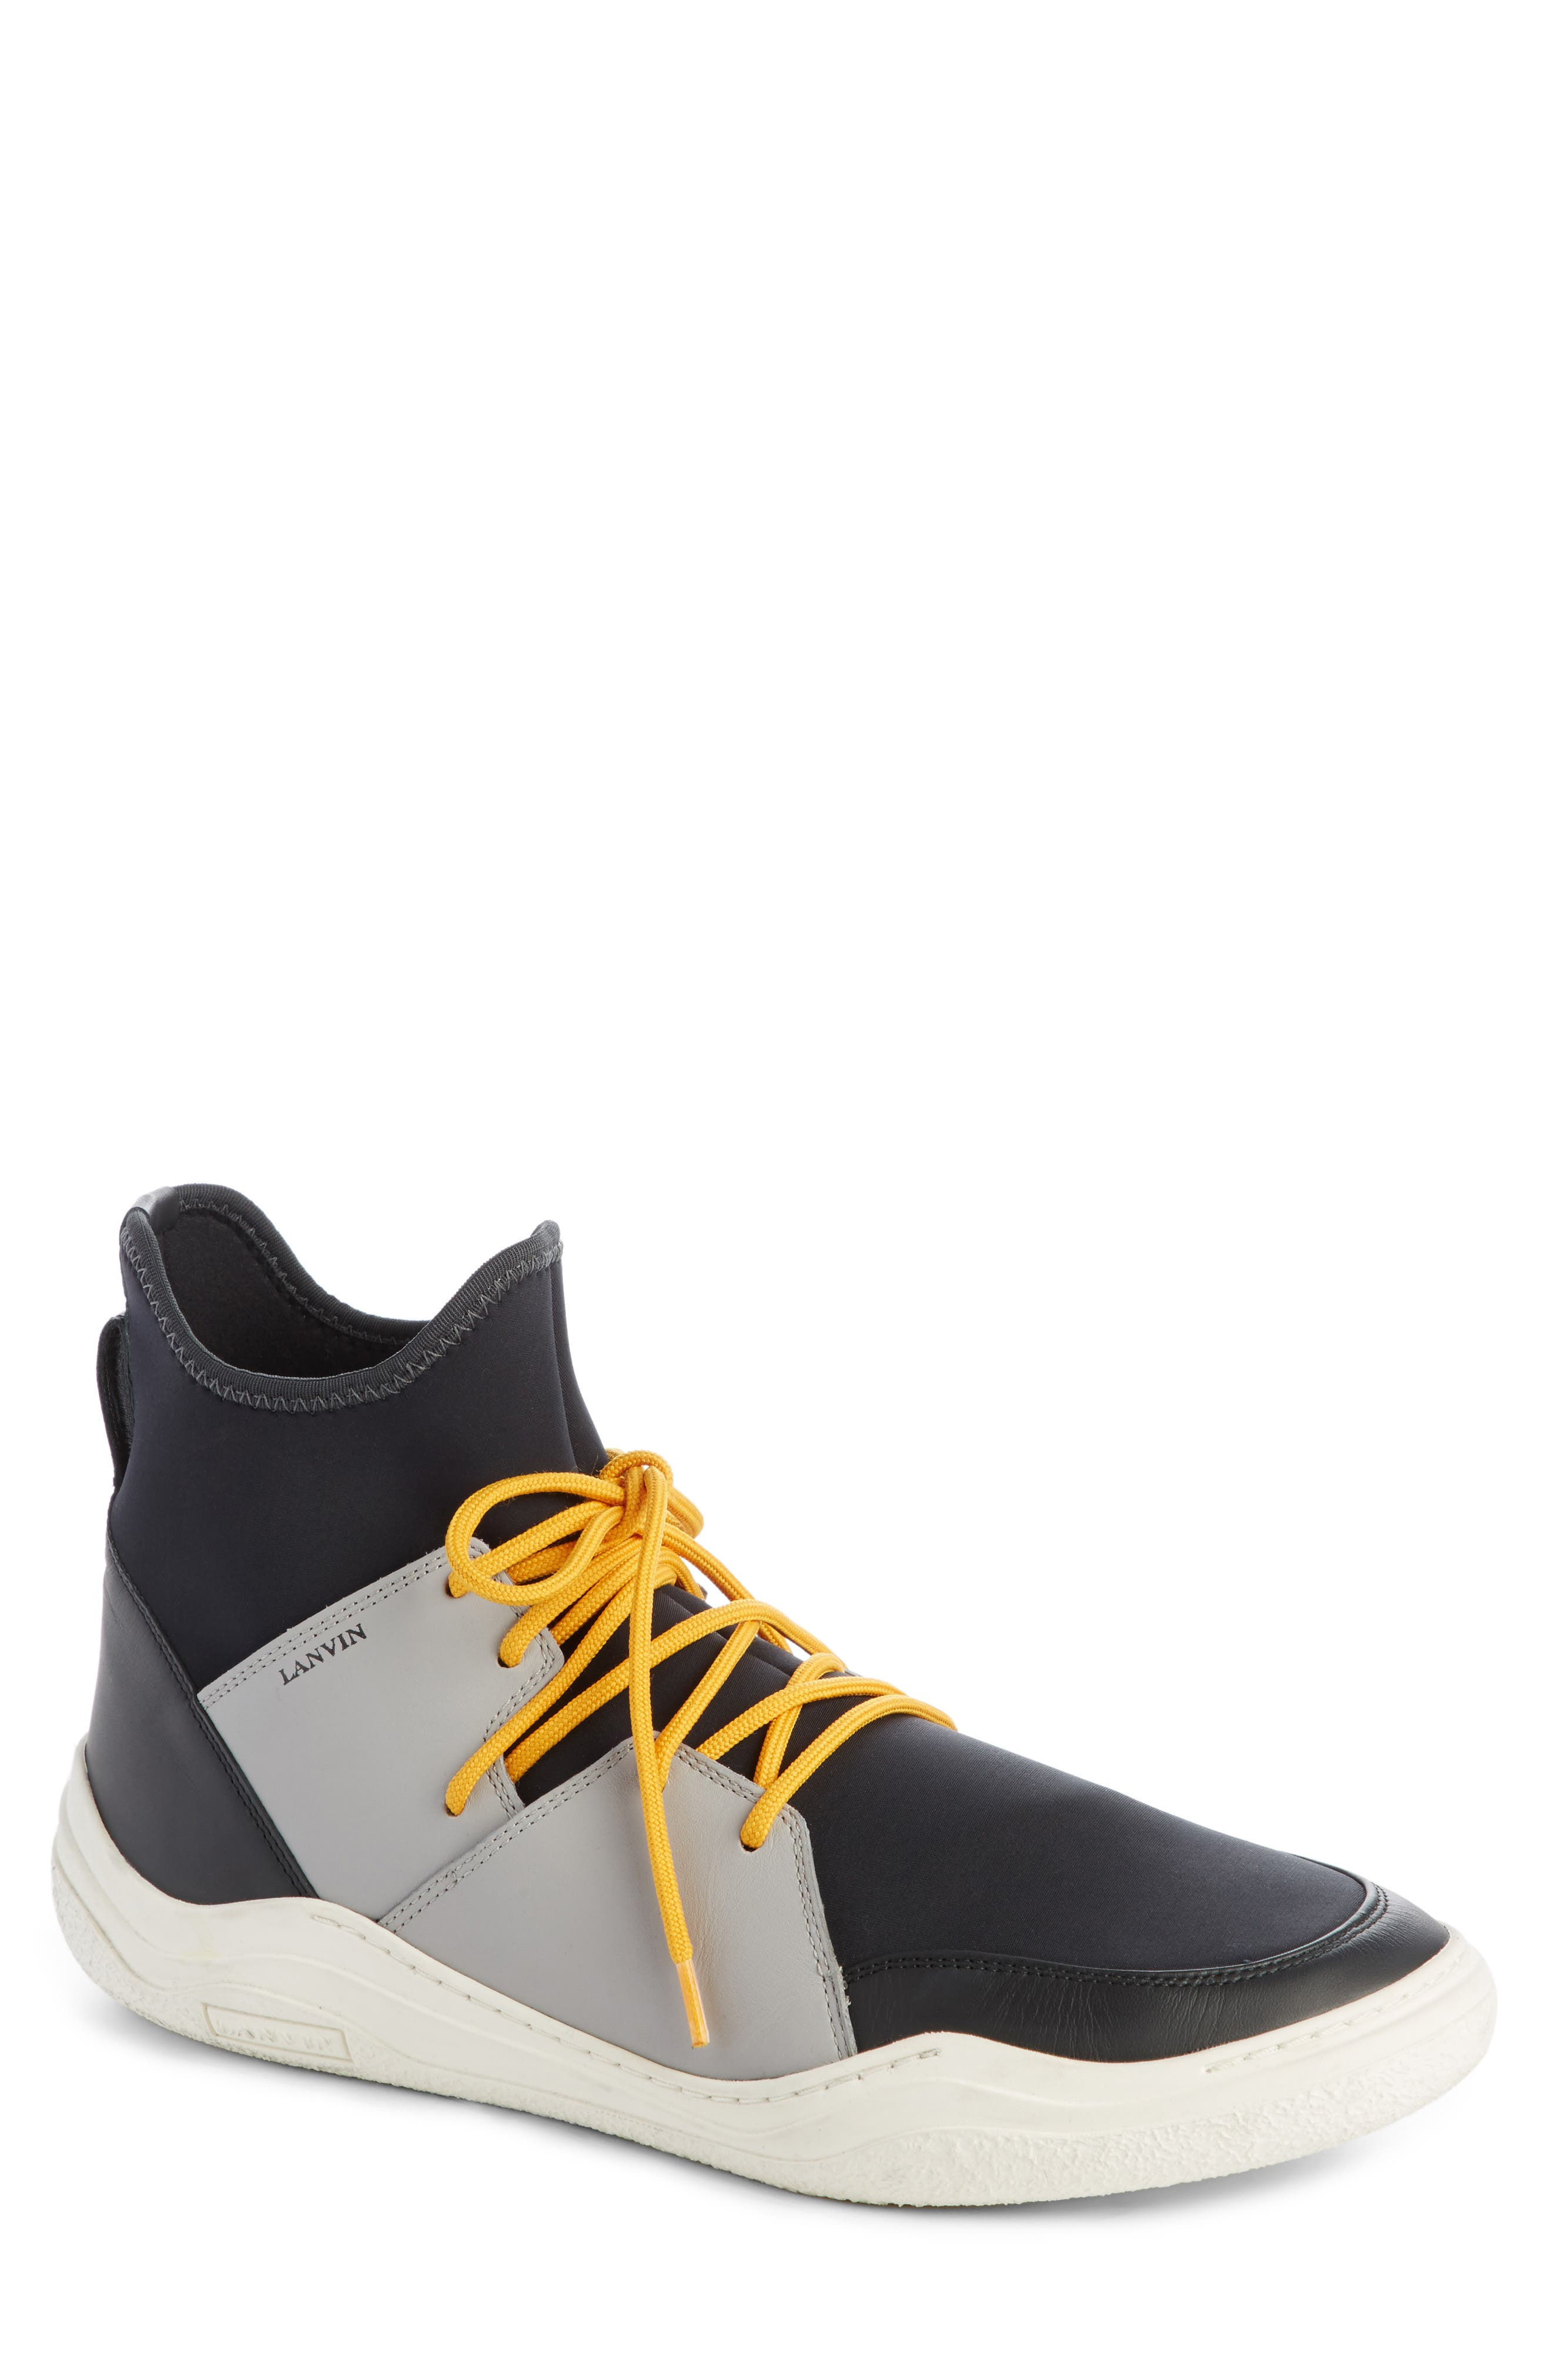 Lanvin High Top Sneaker (Men)